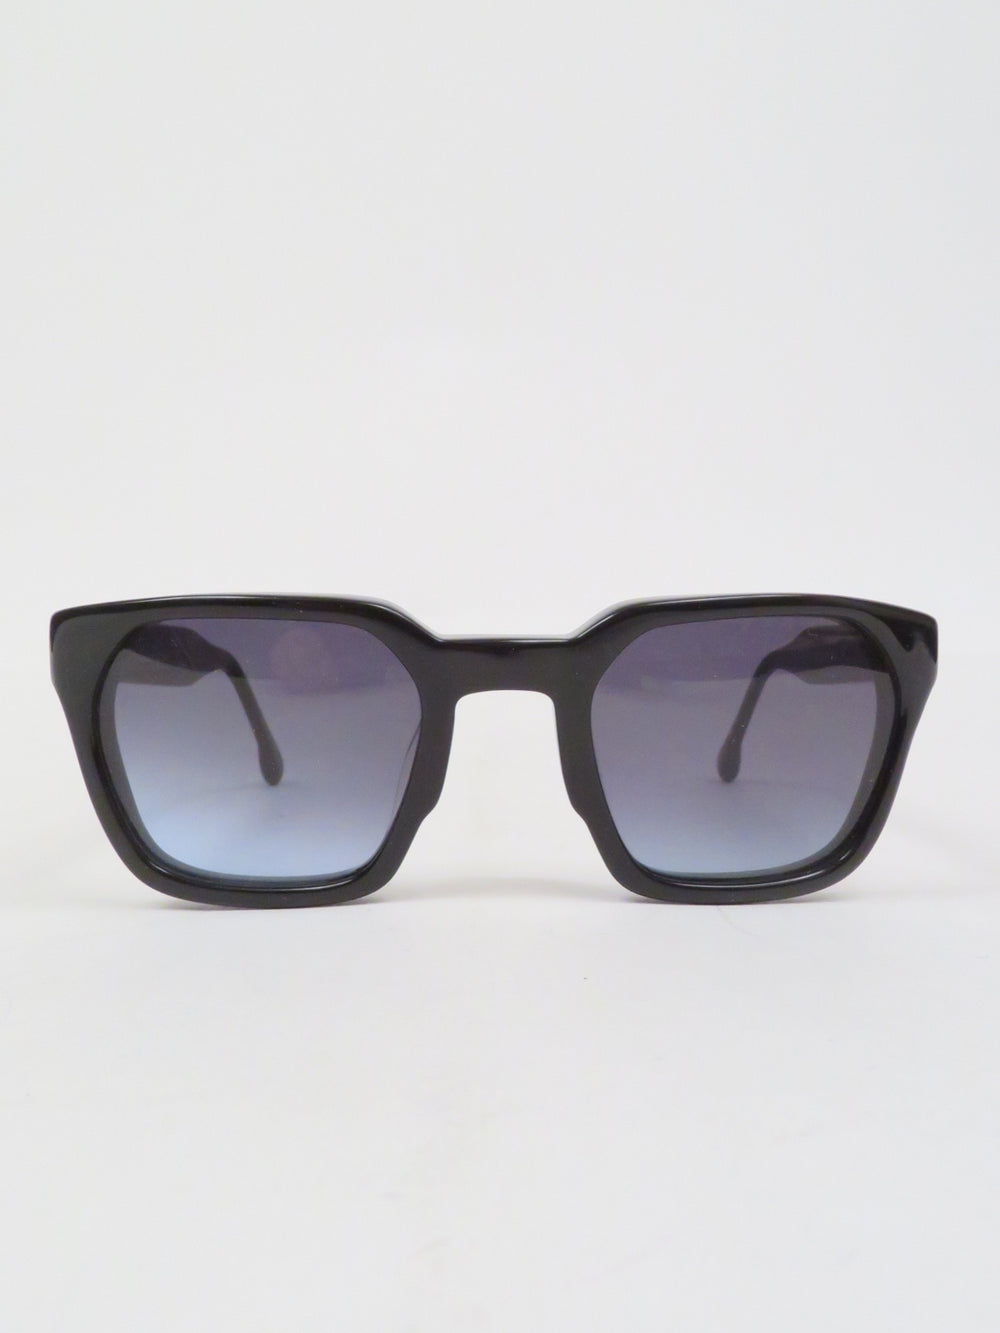 steven alan black sunglasses, features square frames with slate lenses